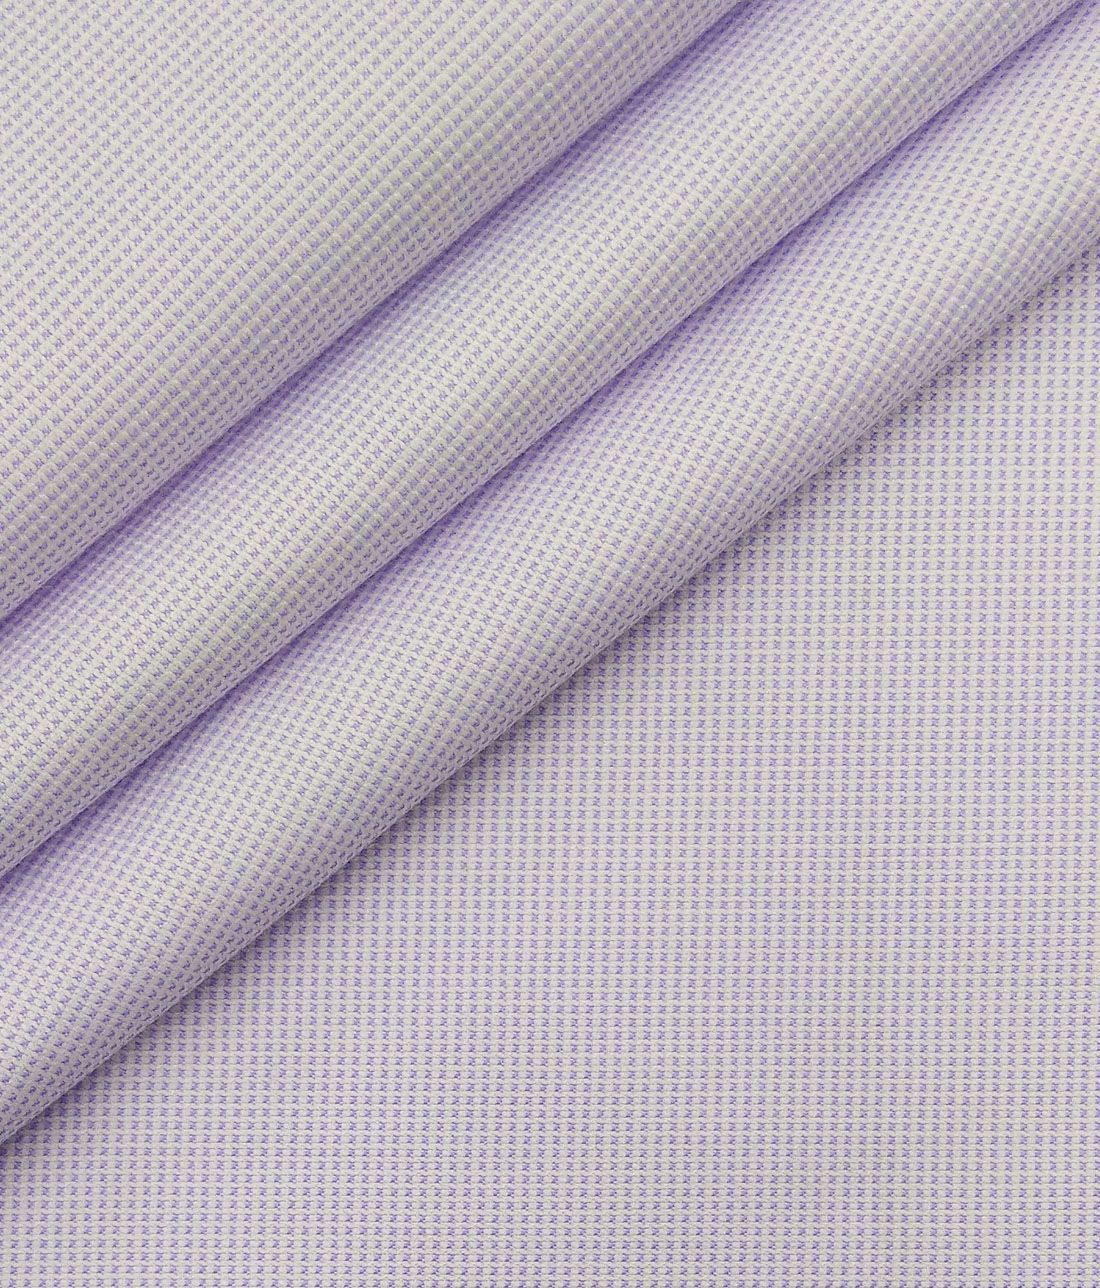 e5eb2e7b5cc Combo of Raymond Dark Purple Self Design Trouser Fabric With Exquisite Light  Purple Cotton Blend Structured Shirt Fabric (Unstitched)